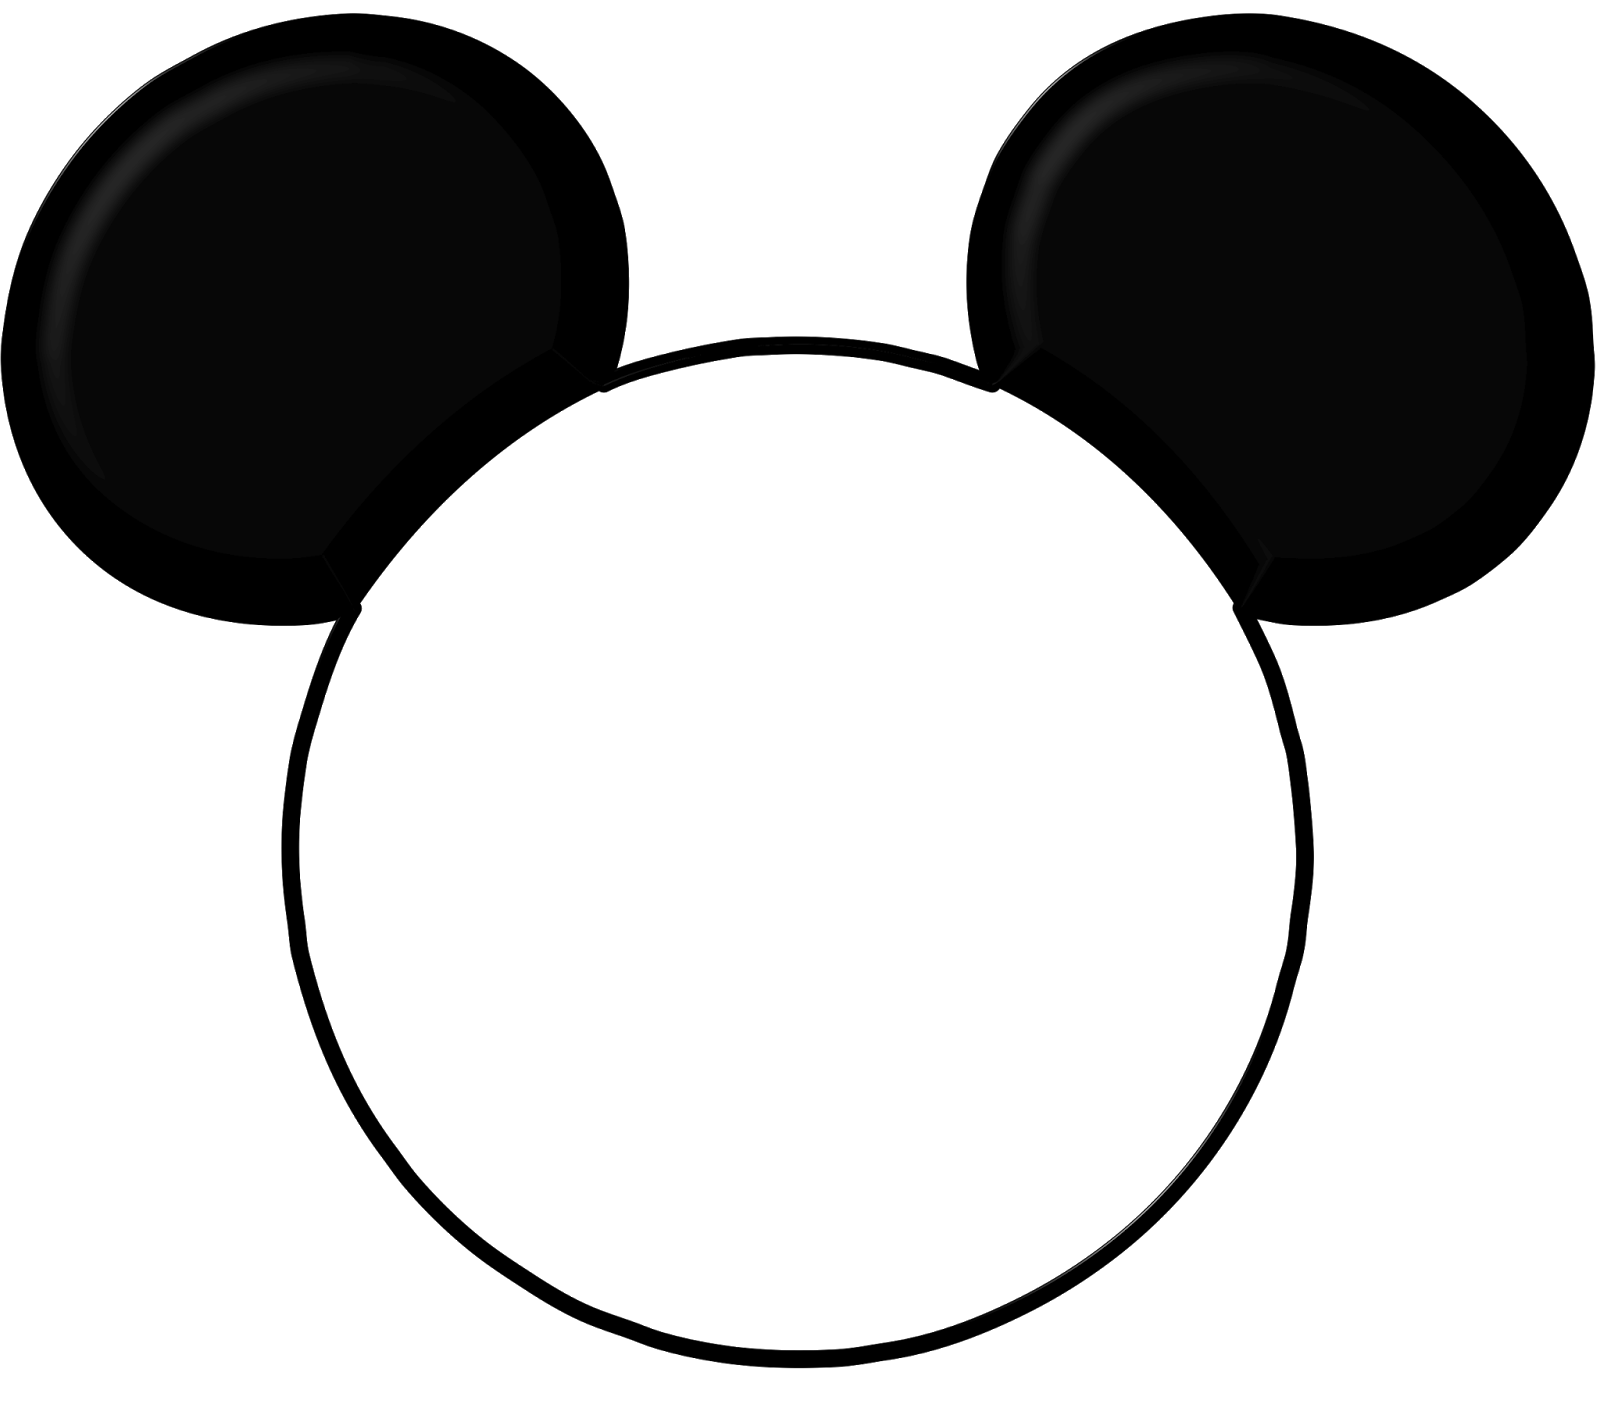 Free download clip art. Mickey mouse head outline png image free